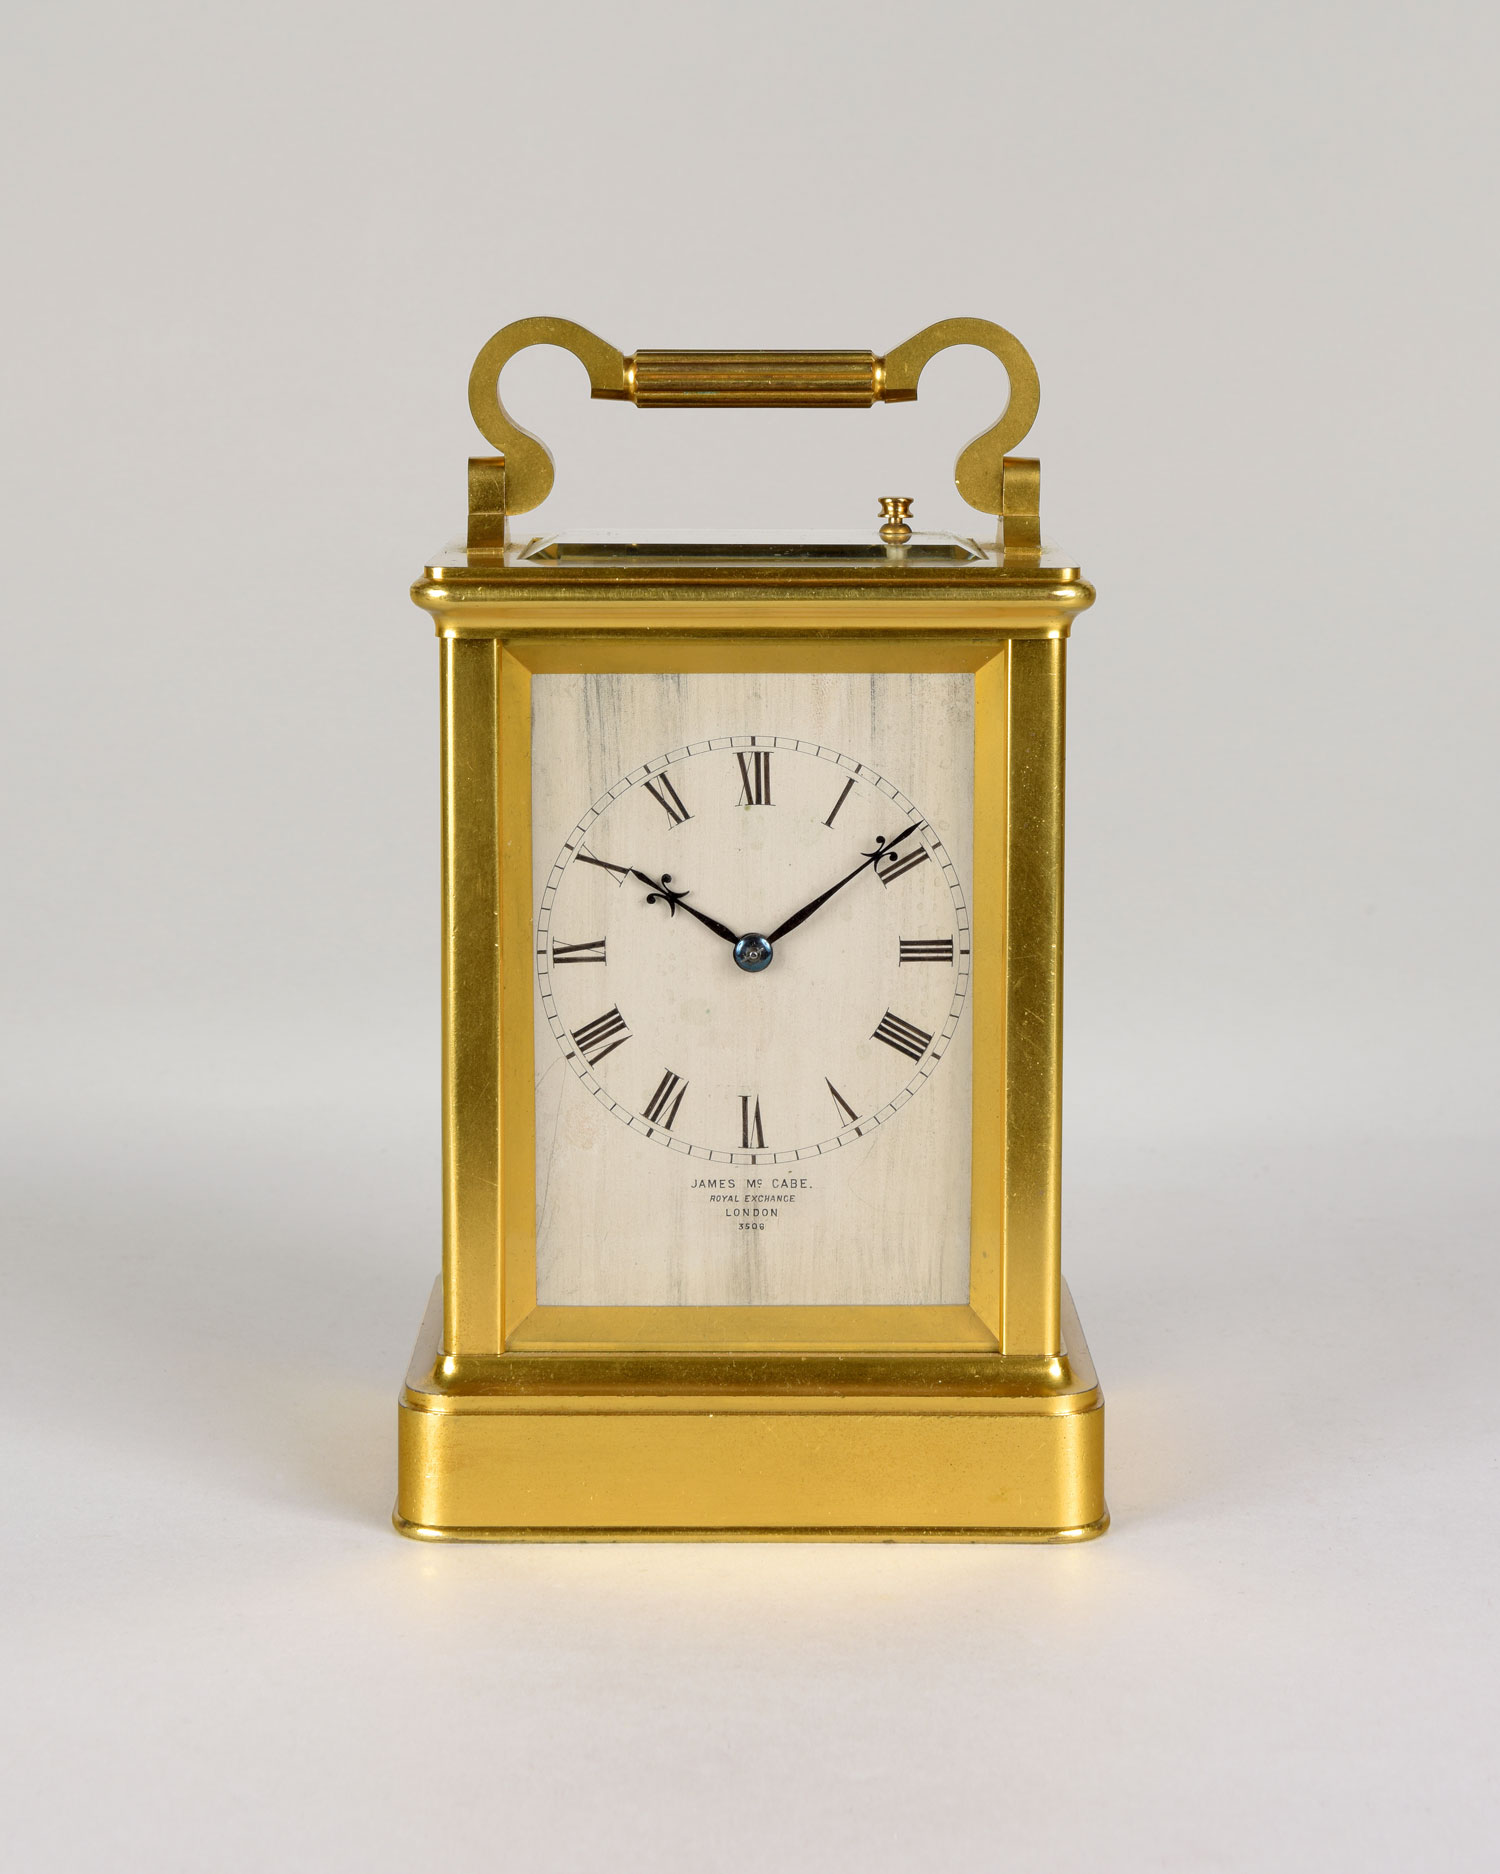 JAMES MCCABE, N° 3506.  A fine brass repeating carriage clock by this famous maker.